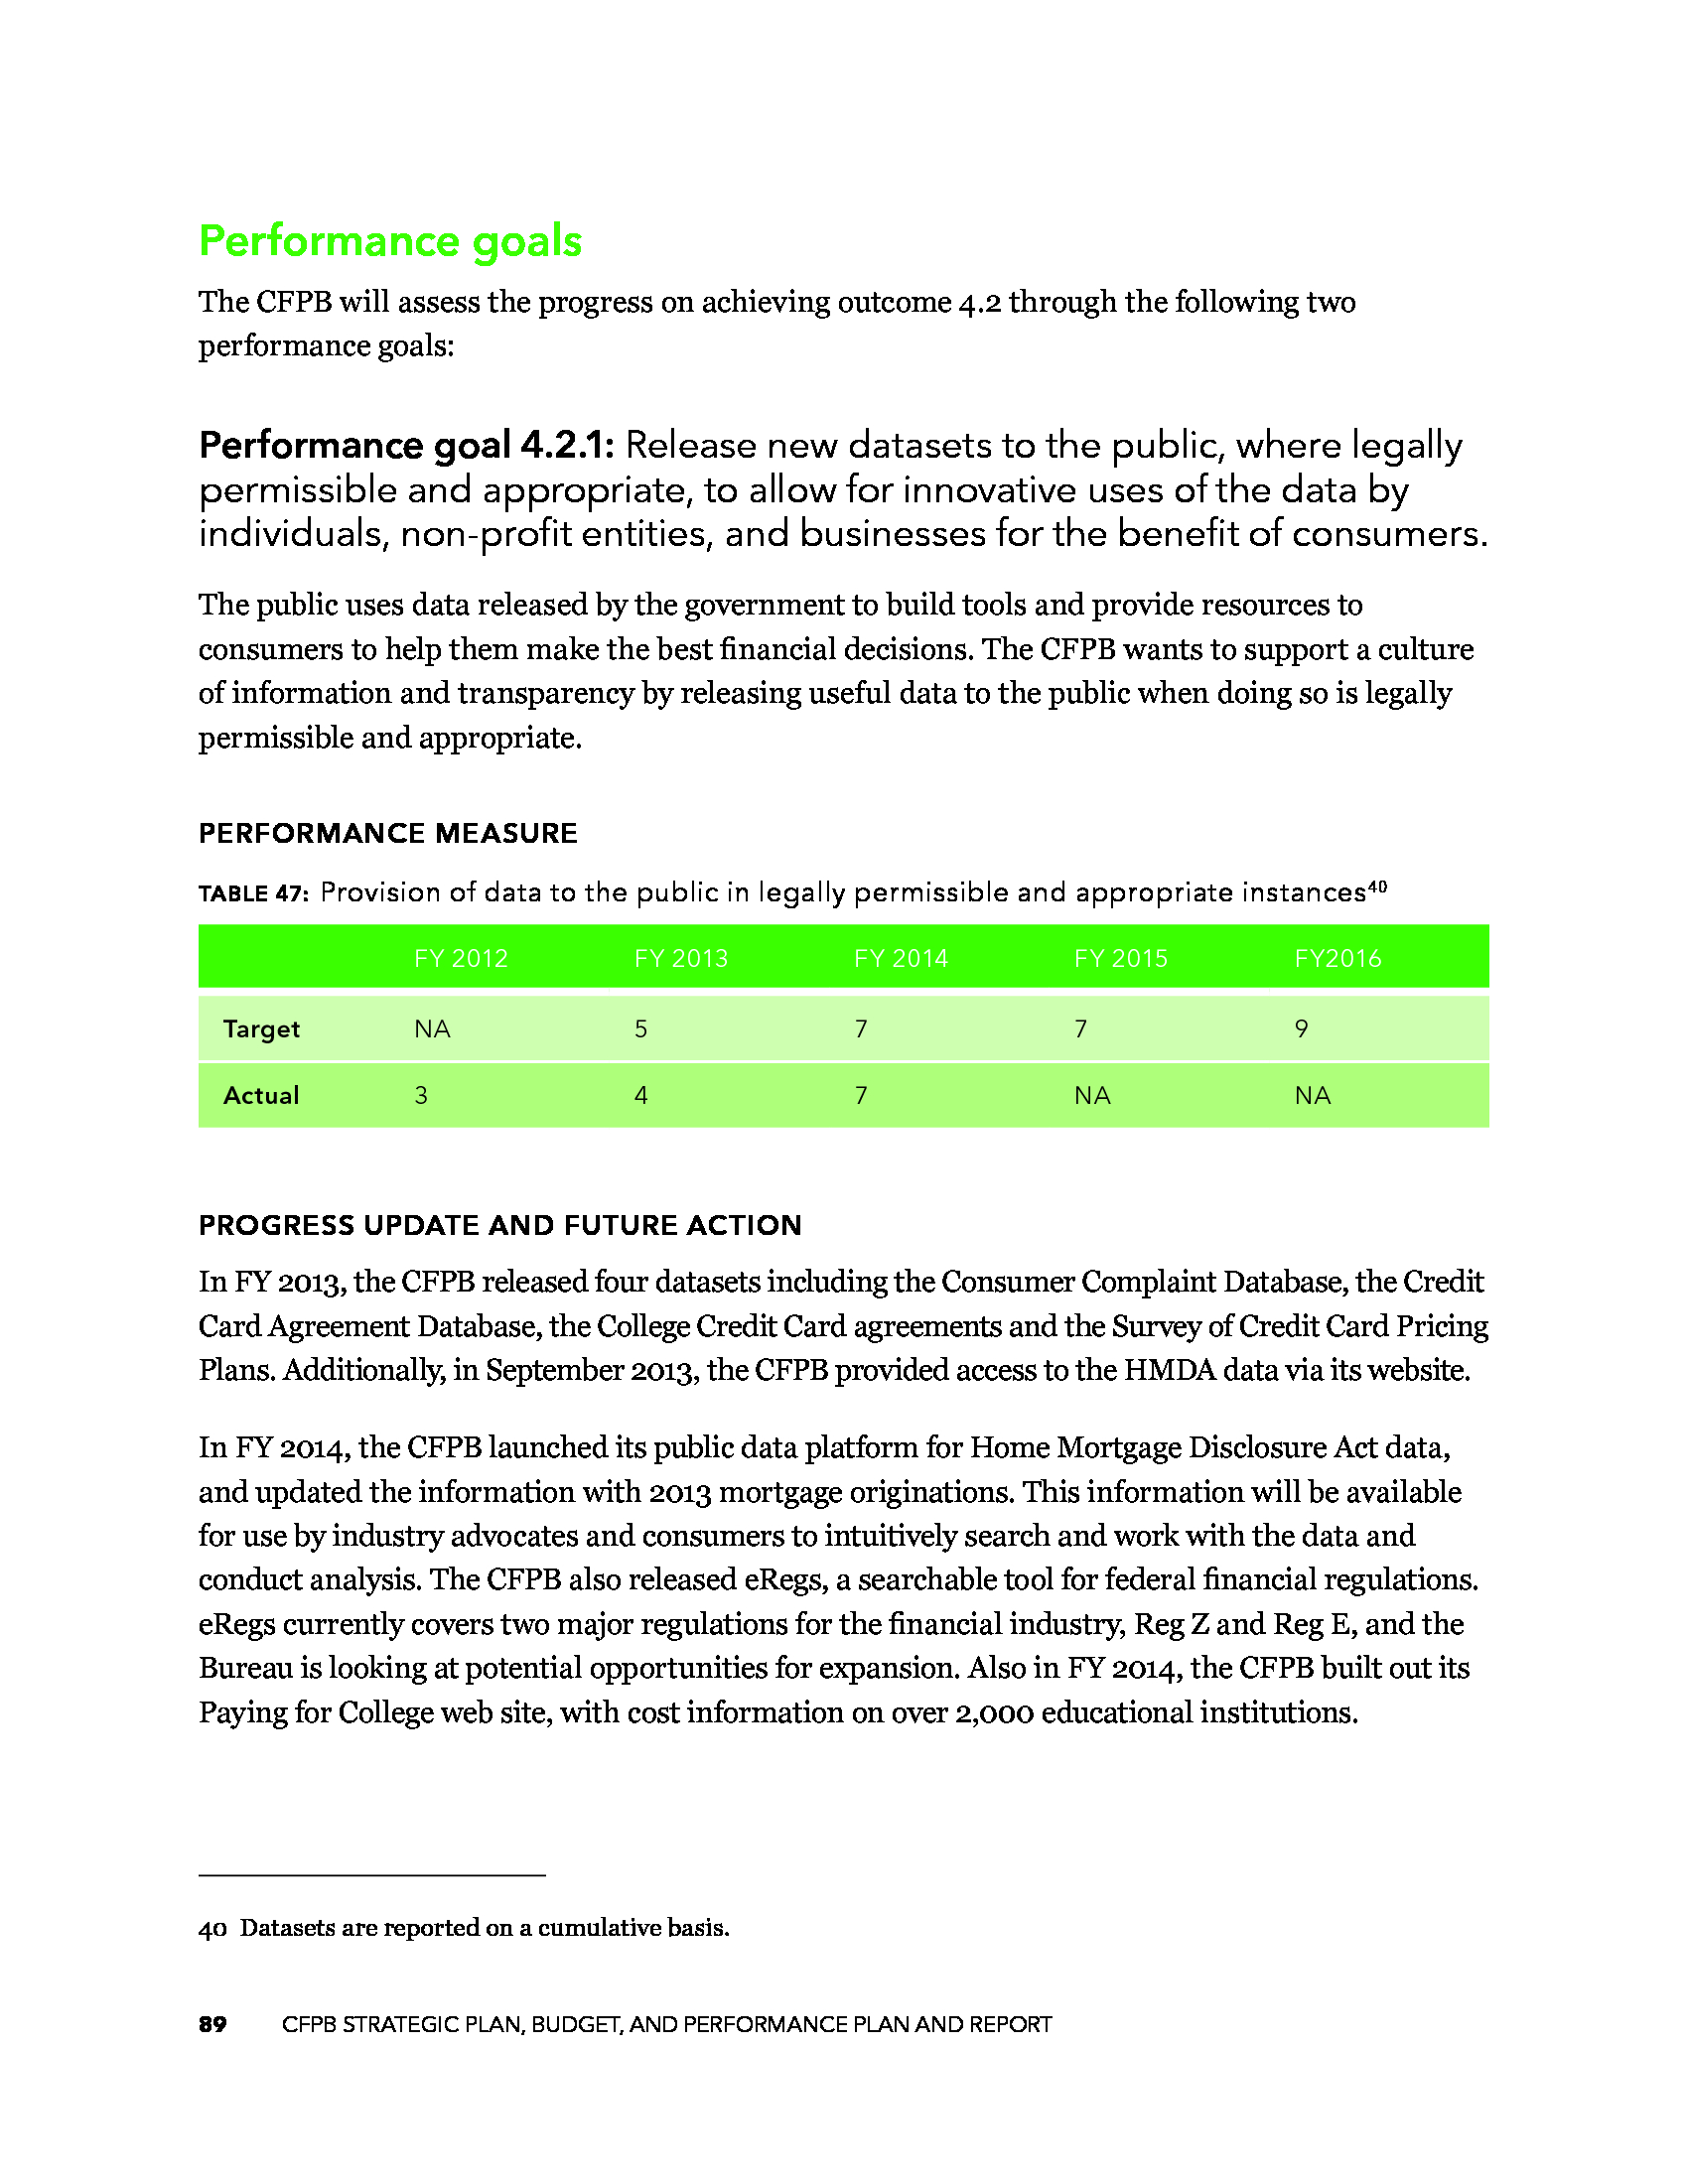 Advisorselect - CFPB Strategic Plan, Budget, and Performance